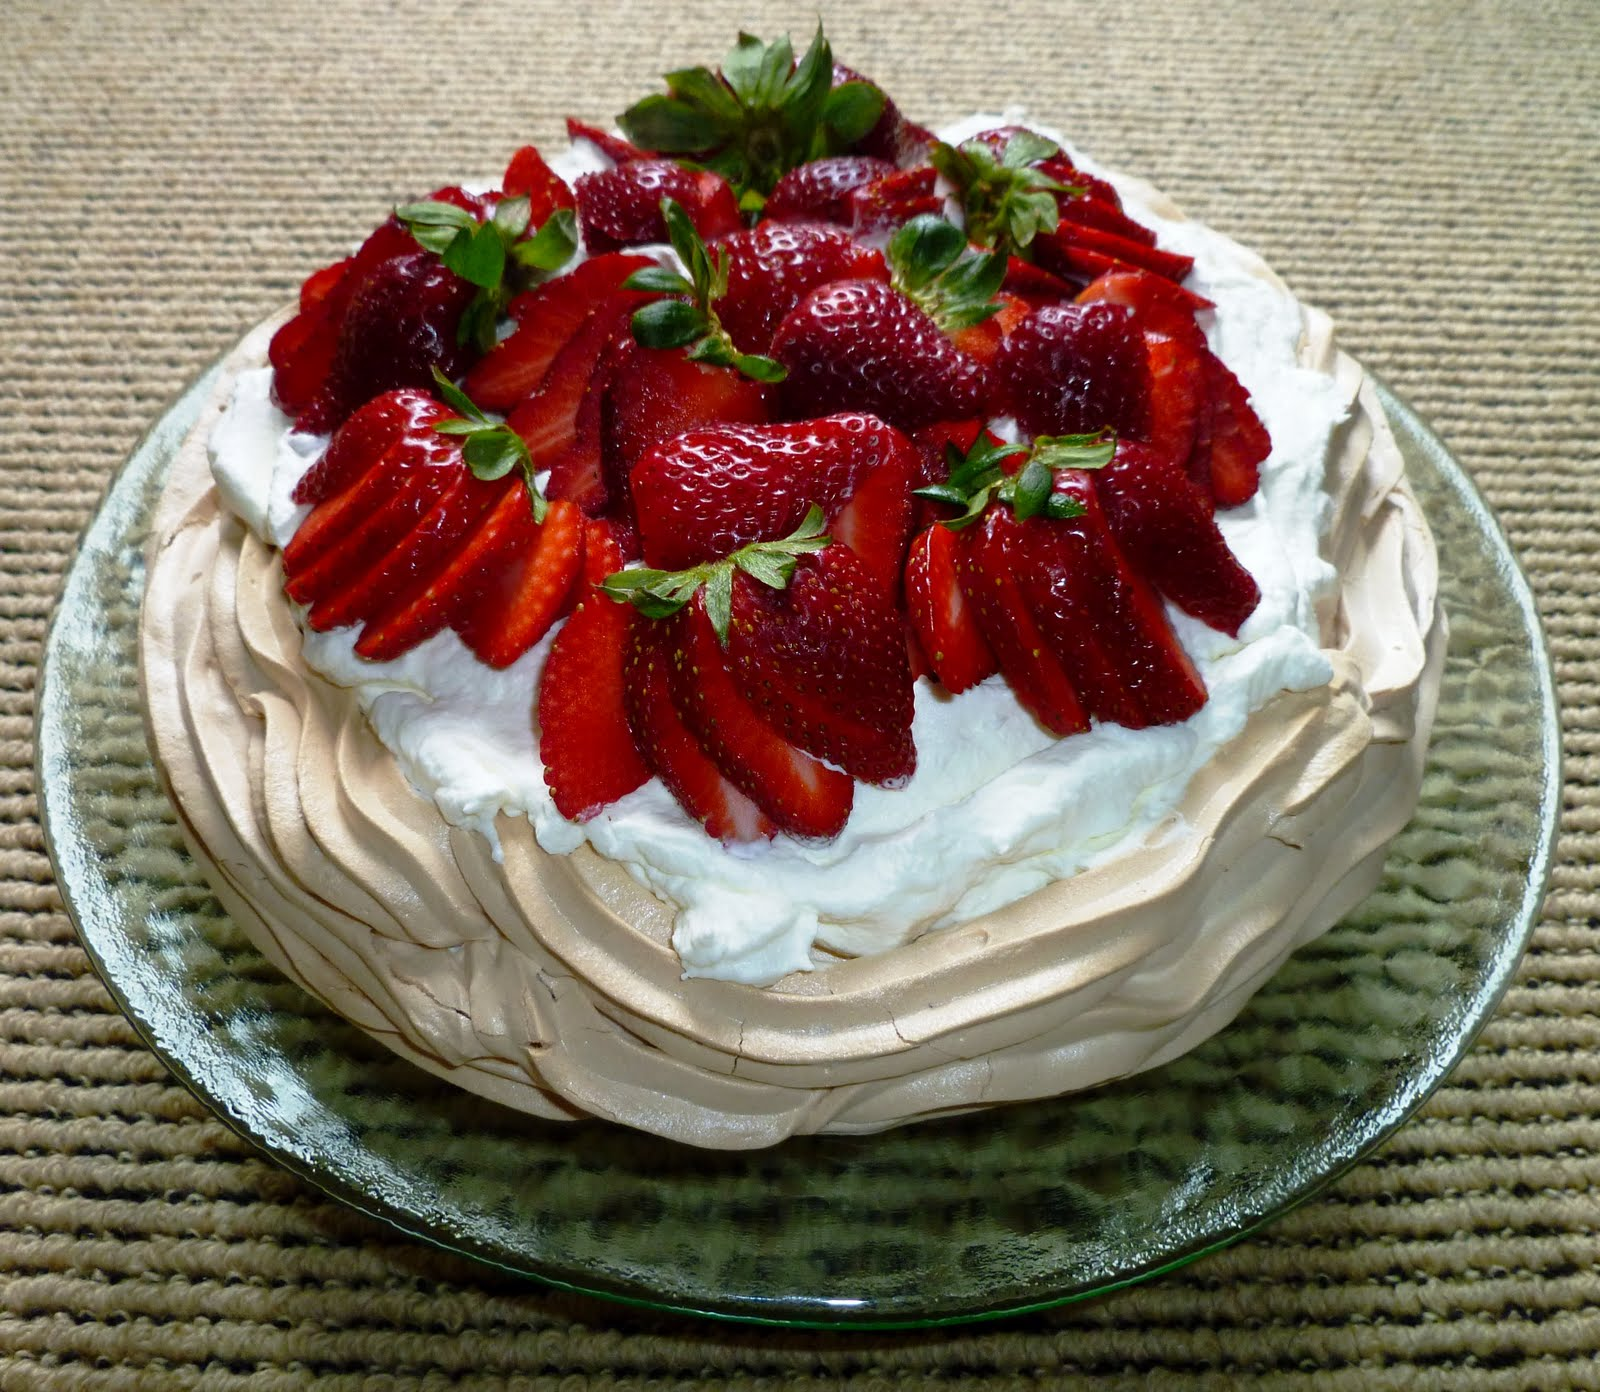 City Home/Country Home: Lemon Berry Pavlova